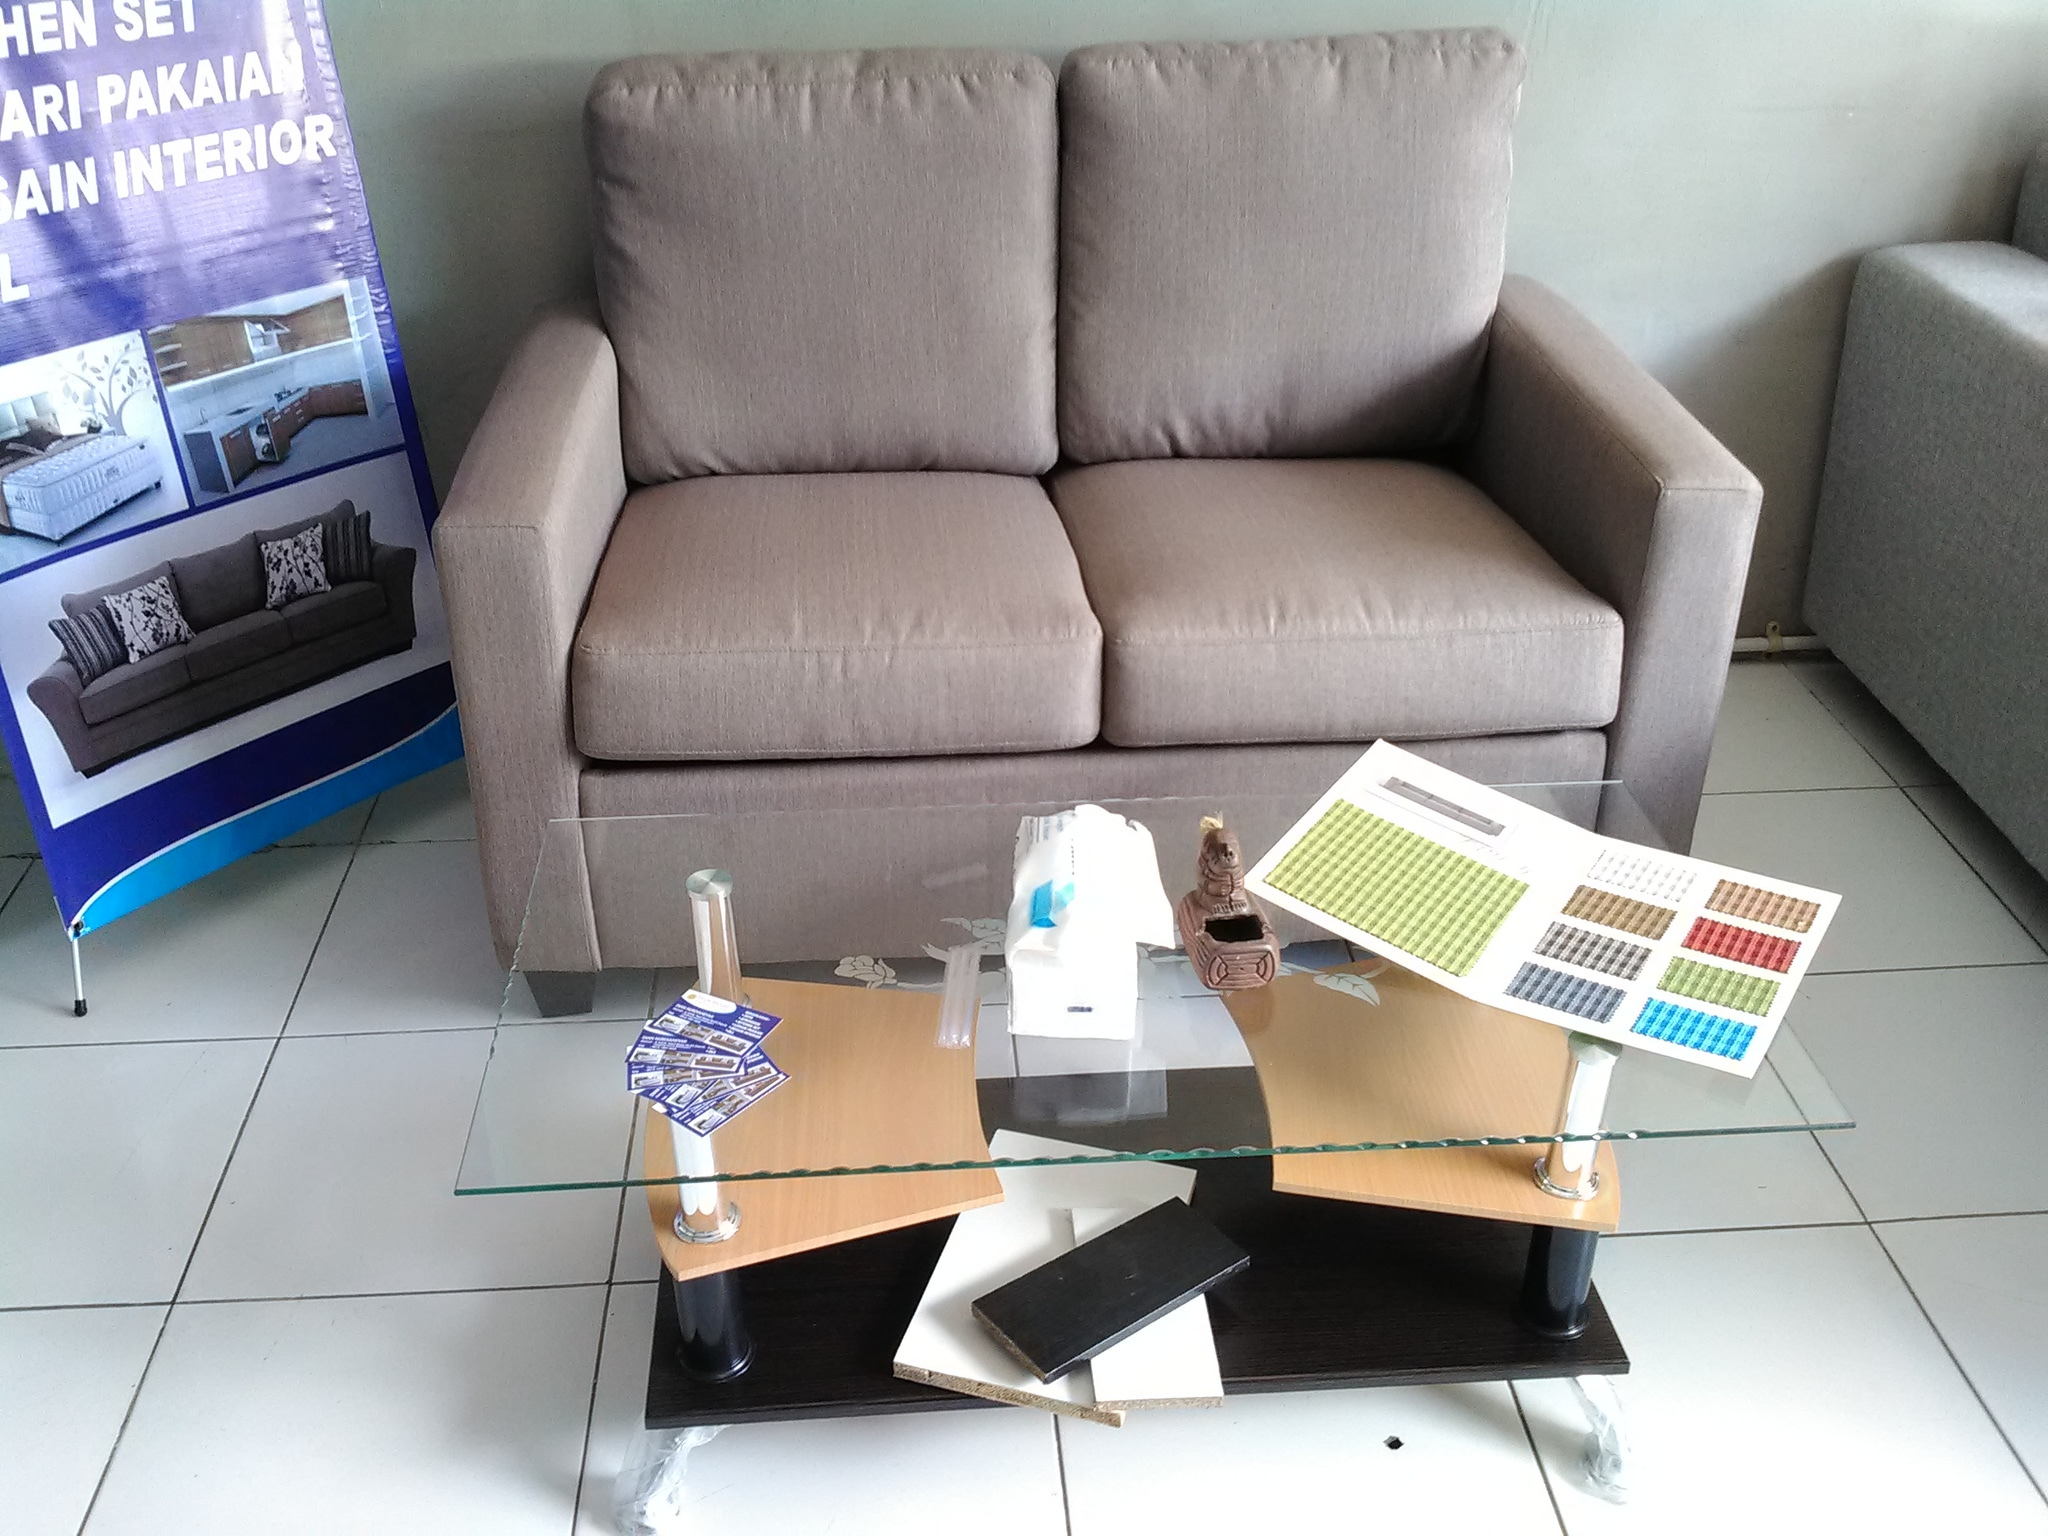 sofa bed malaysia murah leona furniture village 3 seat urban home designing trends